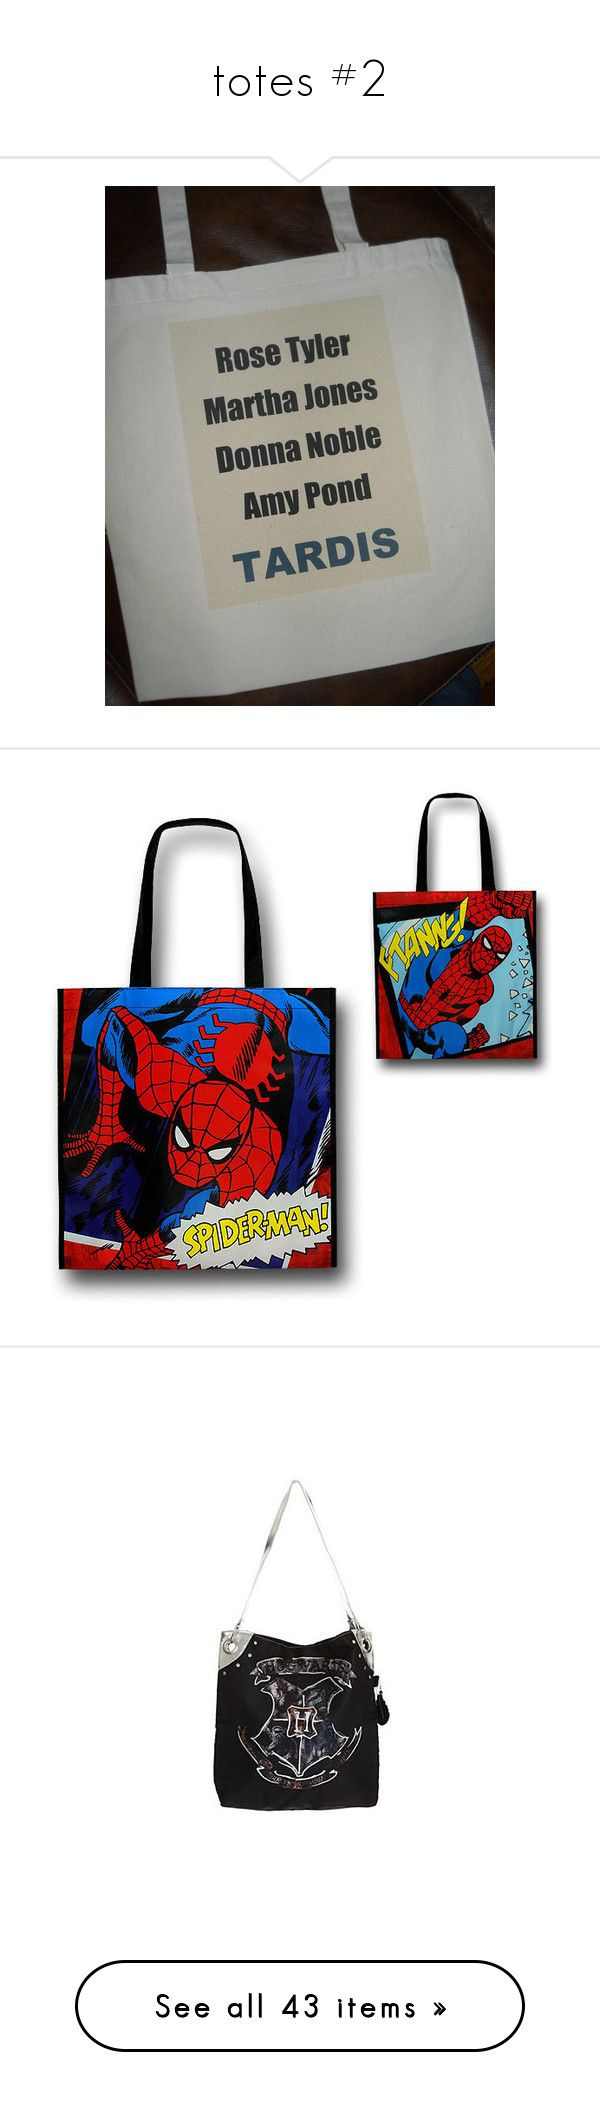 """""""totes #2"""" by sarah-hill-622 ❤ liked on Polyvore featuring doctor who, bags, handbags, tote bags, handbags tote bags, tote hand bags, tote handbags, tote purses, tote bag purse and 5sos"""